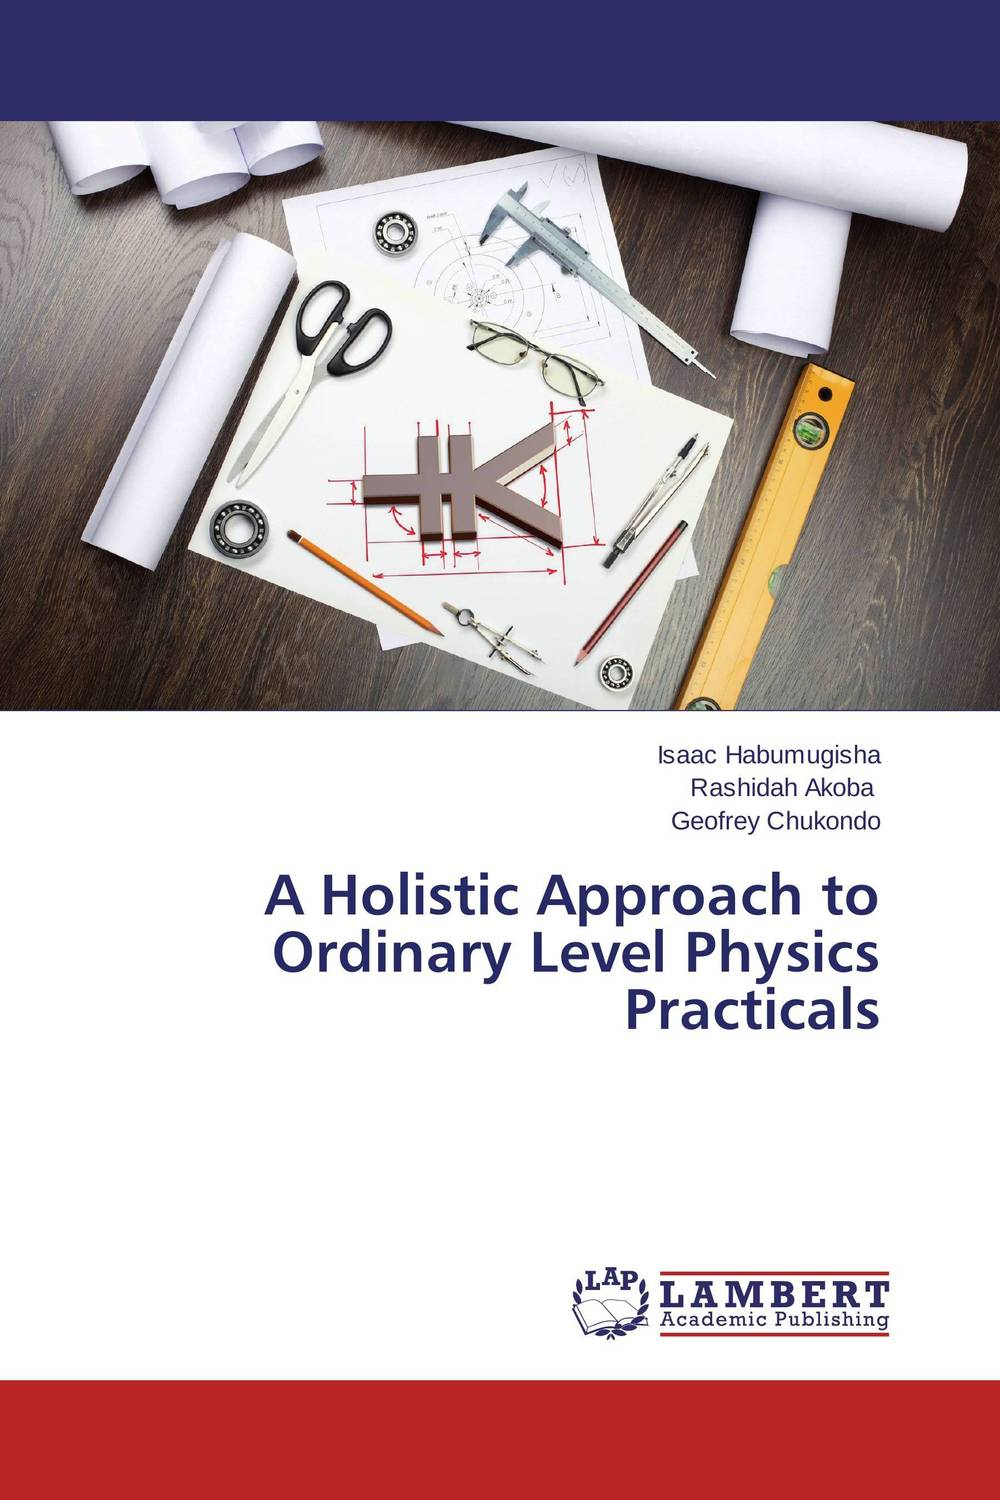 A Holistic Approach to Ordinary Level Physics Practicals lidiya strautman introduction to the world of nuclear physics